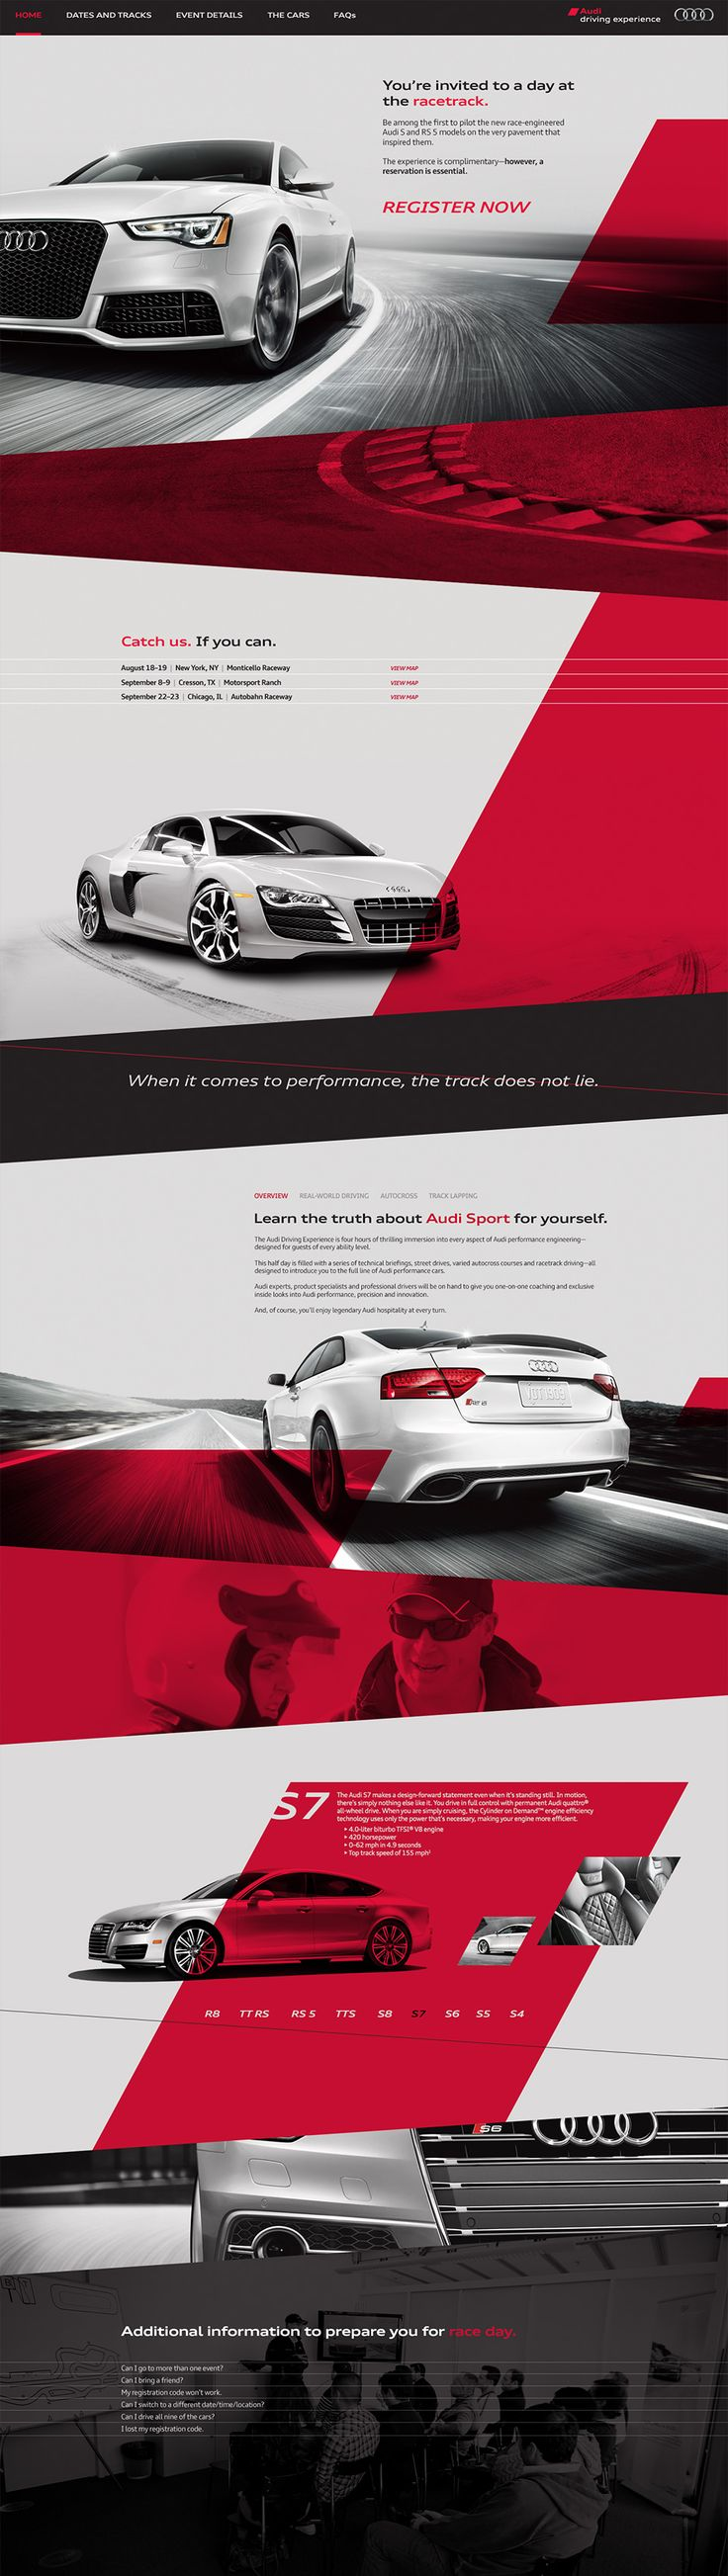 Audi / Audi Driving Experience